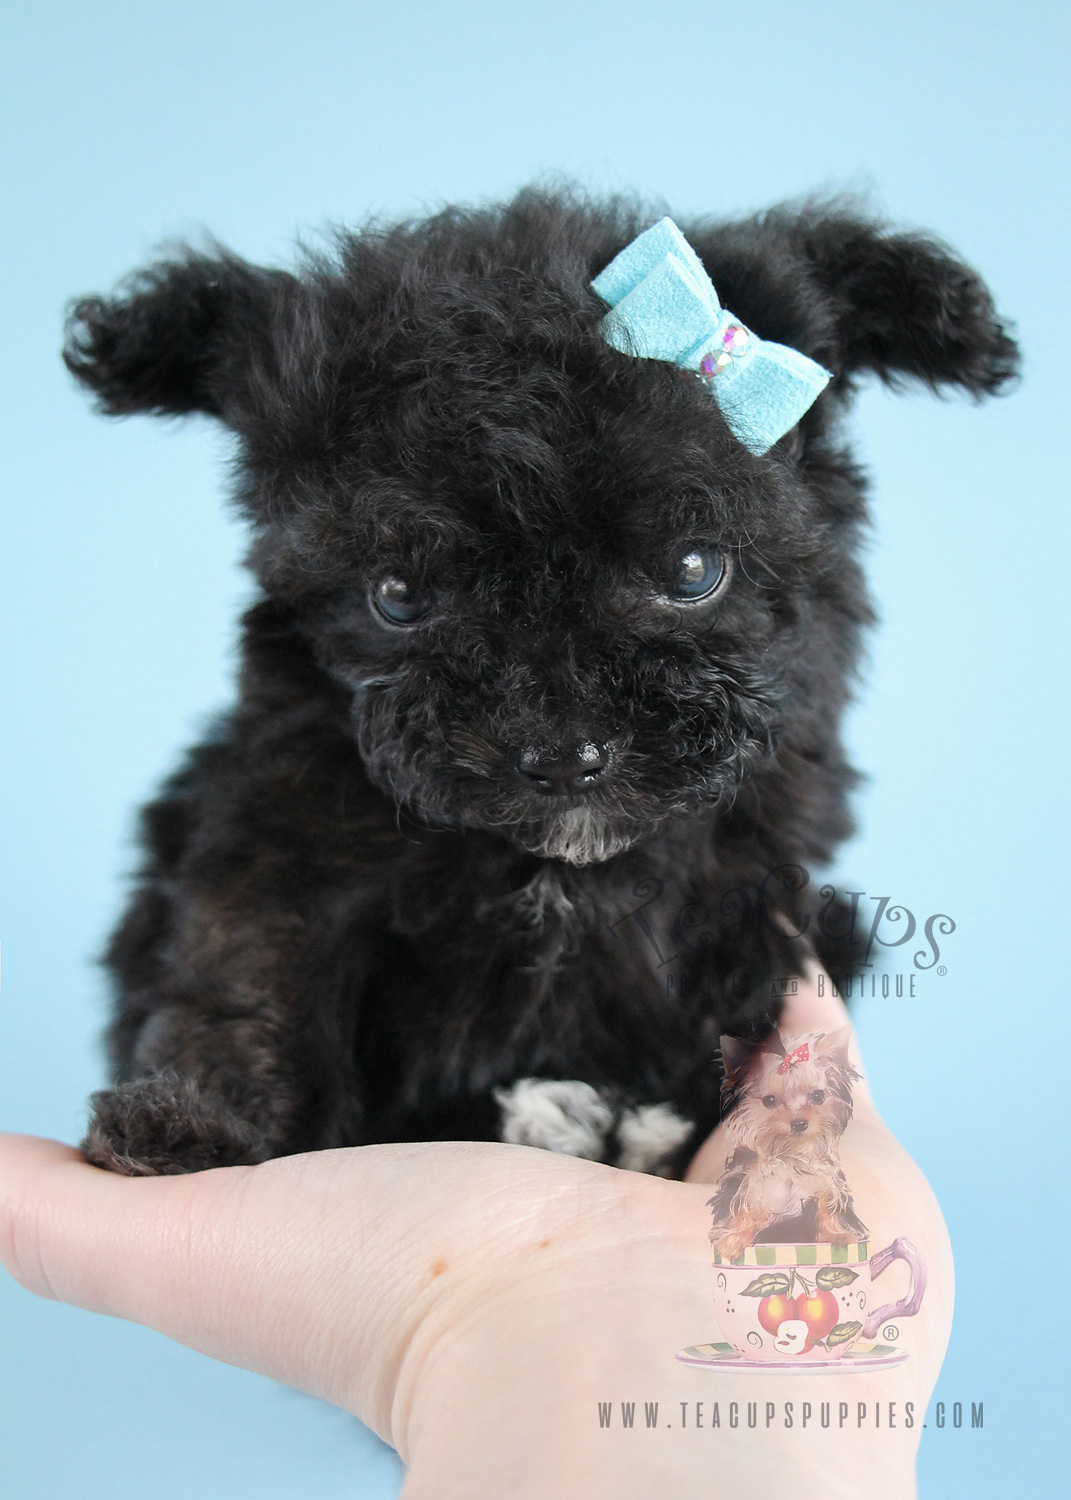 THOU SHALT NOT BREED TEACUP PUPPIES - Lets Adopt! Global